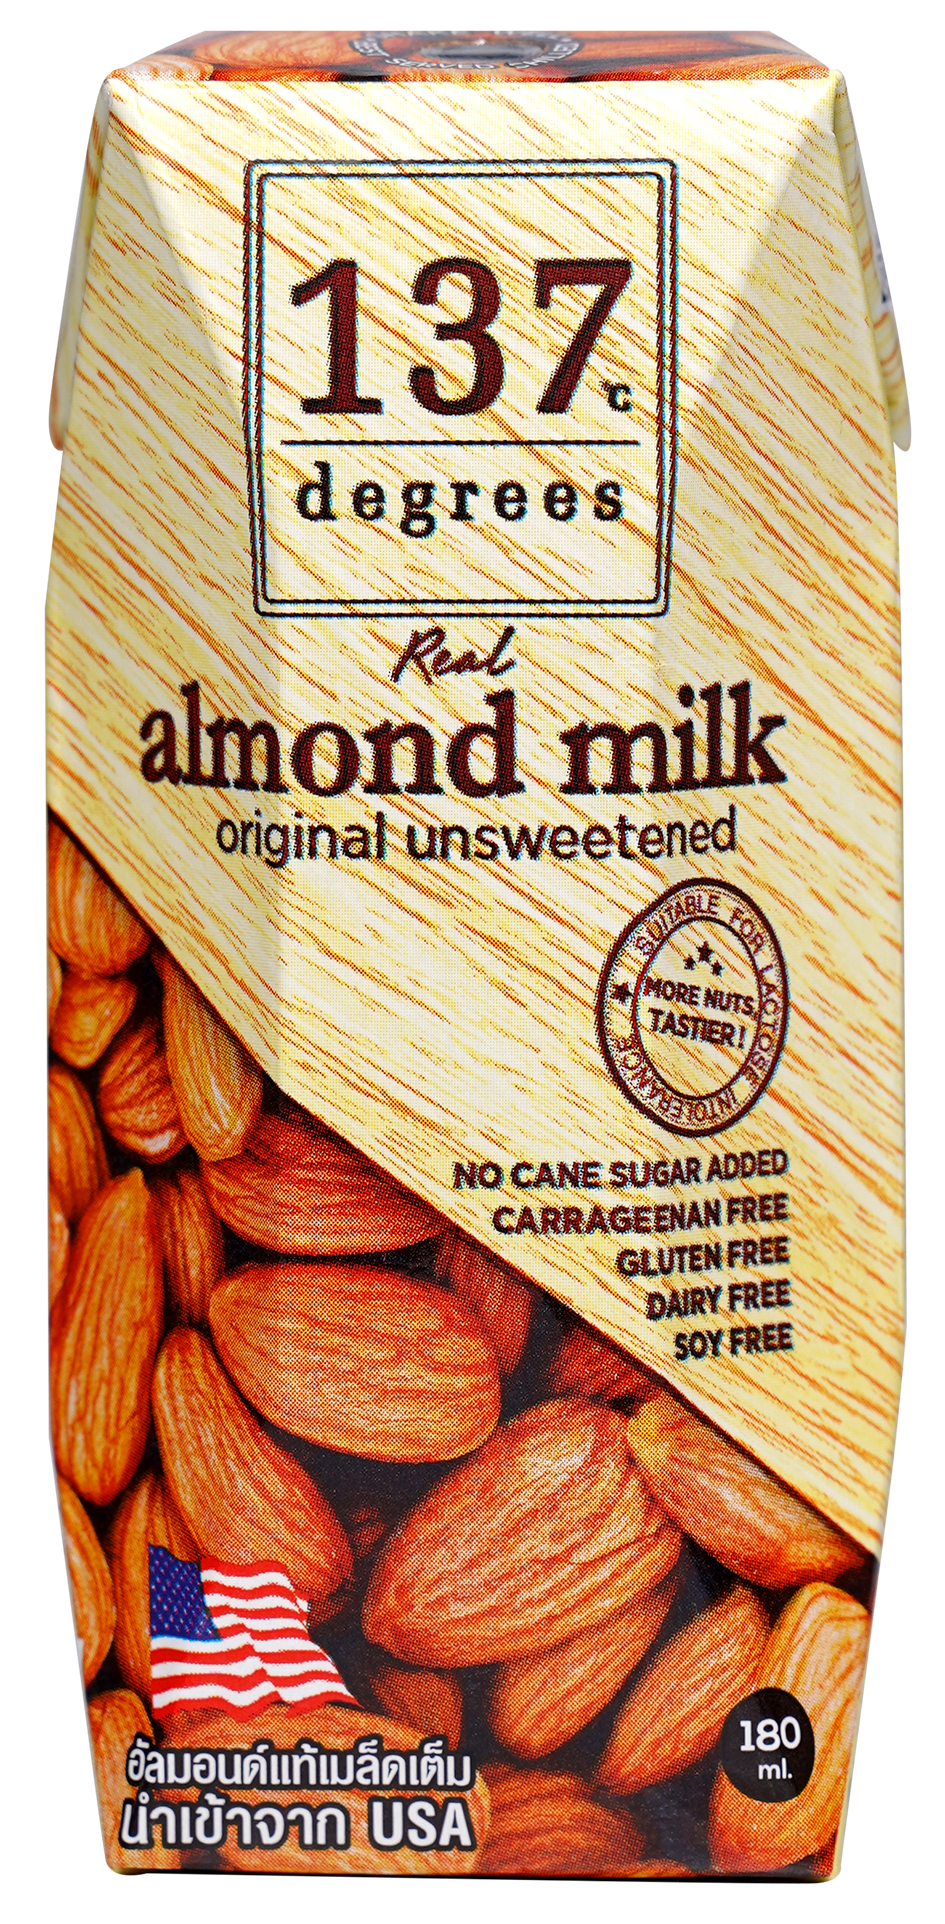 137°c Degrees Almond Milk Unsweetened